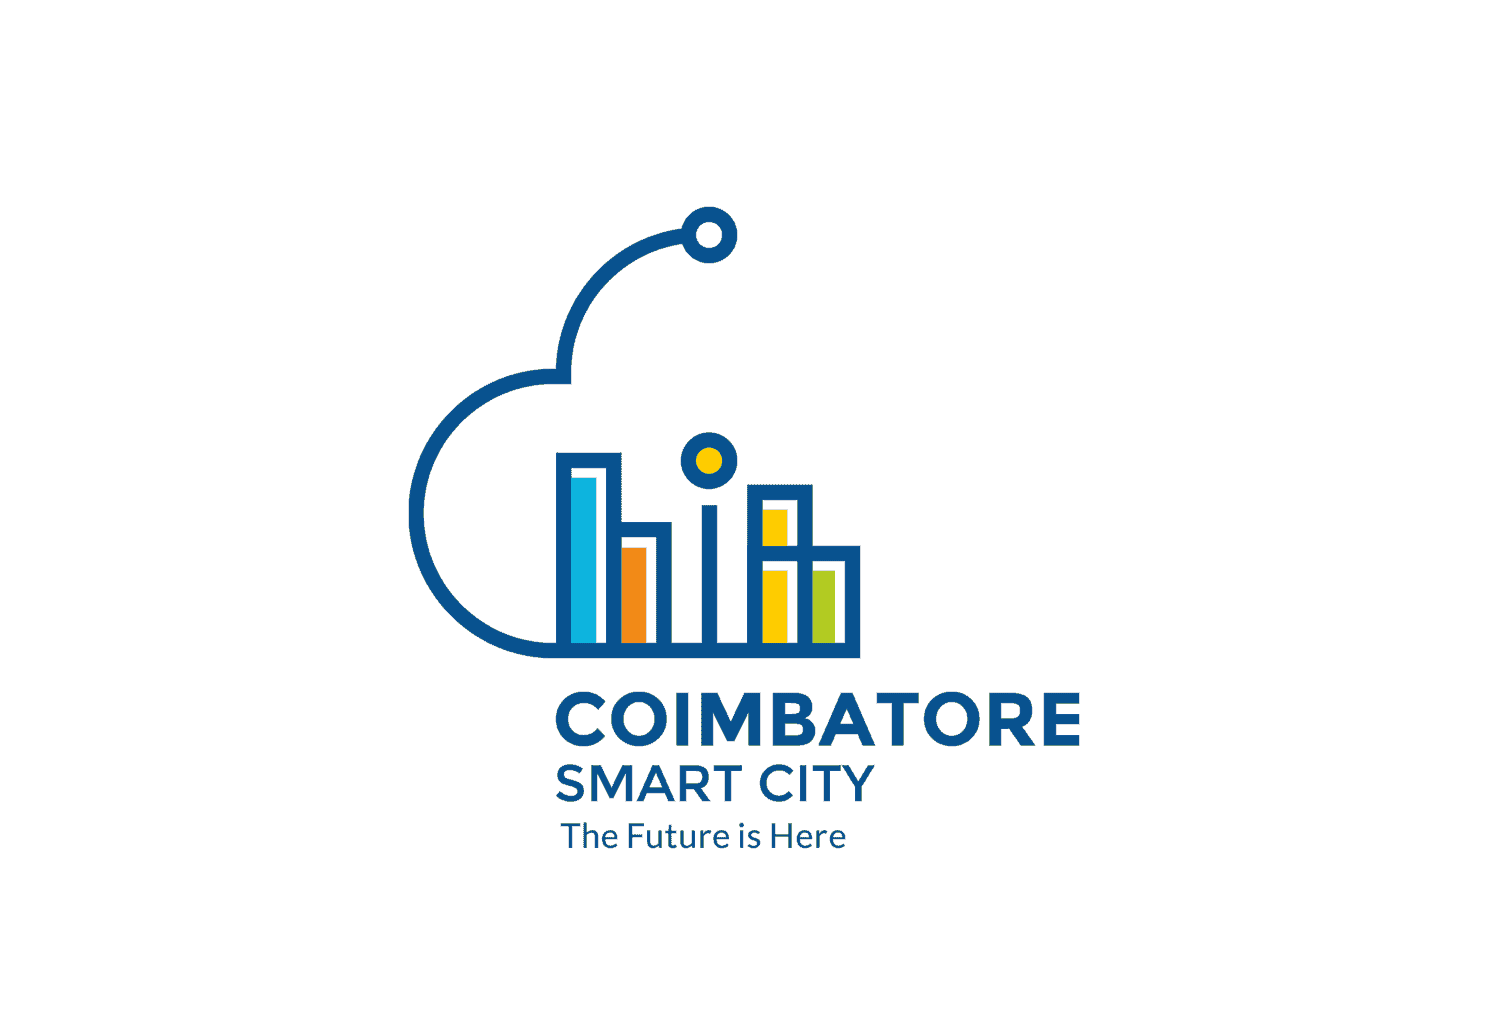 Coimbatore Smart City The Future is Here Logo